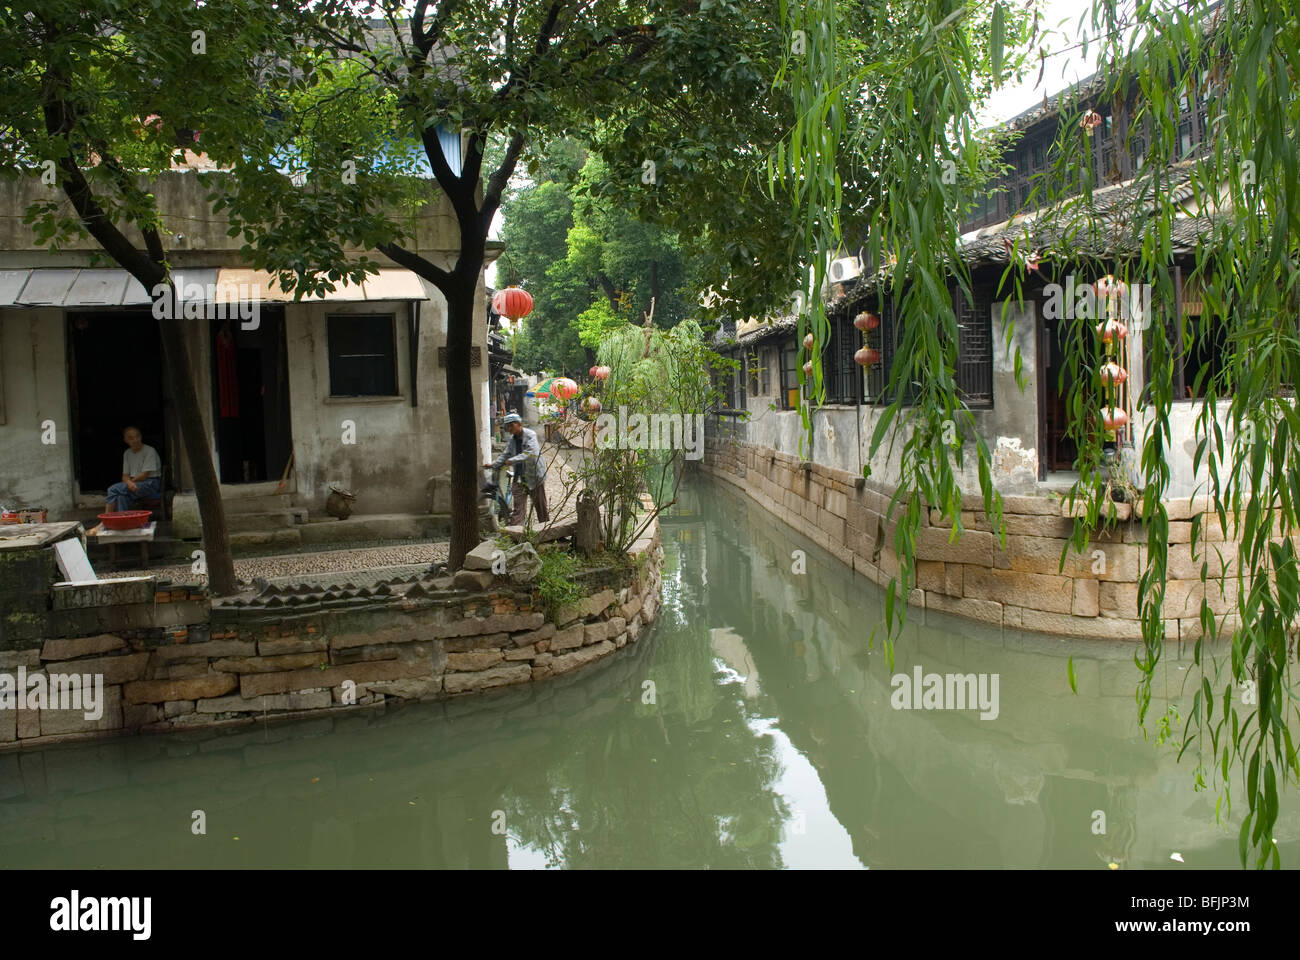 Canals In The Small Ancient Town Of Luzhi Jiangsu